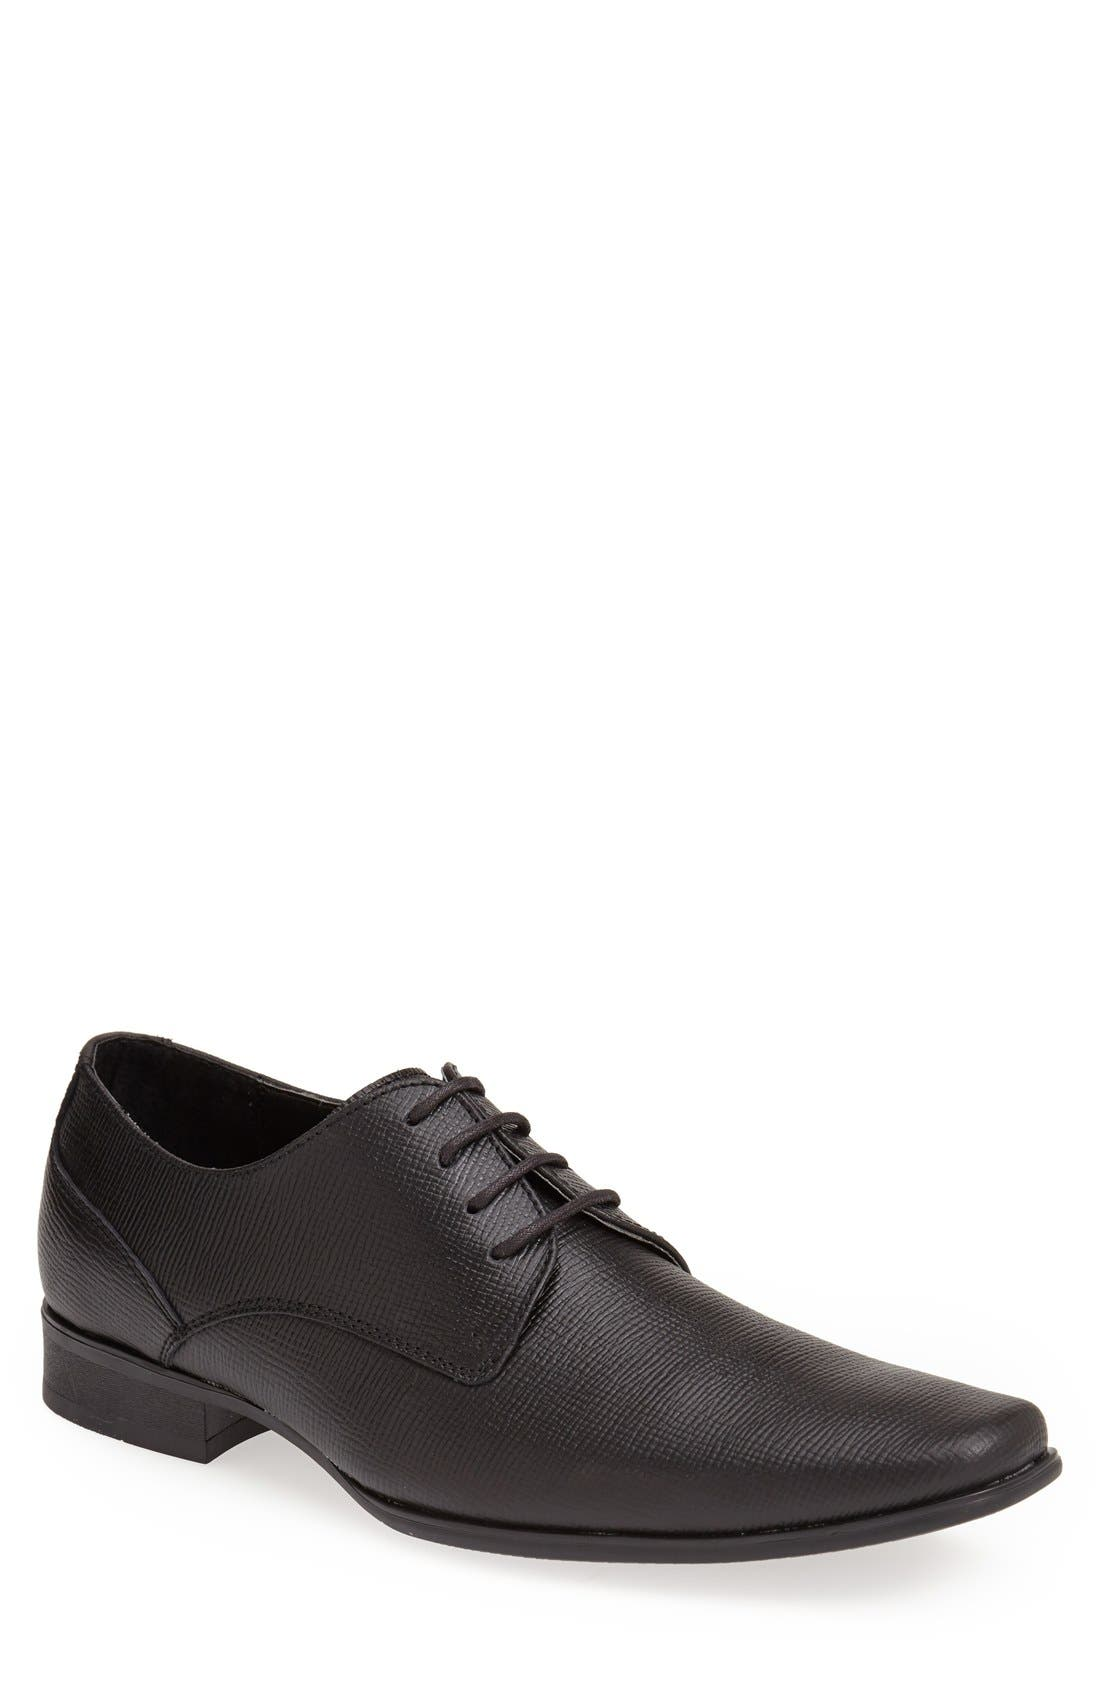 Main Image - Calvin Klein 'Brodie' Plain Toe Derby (Men)